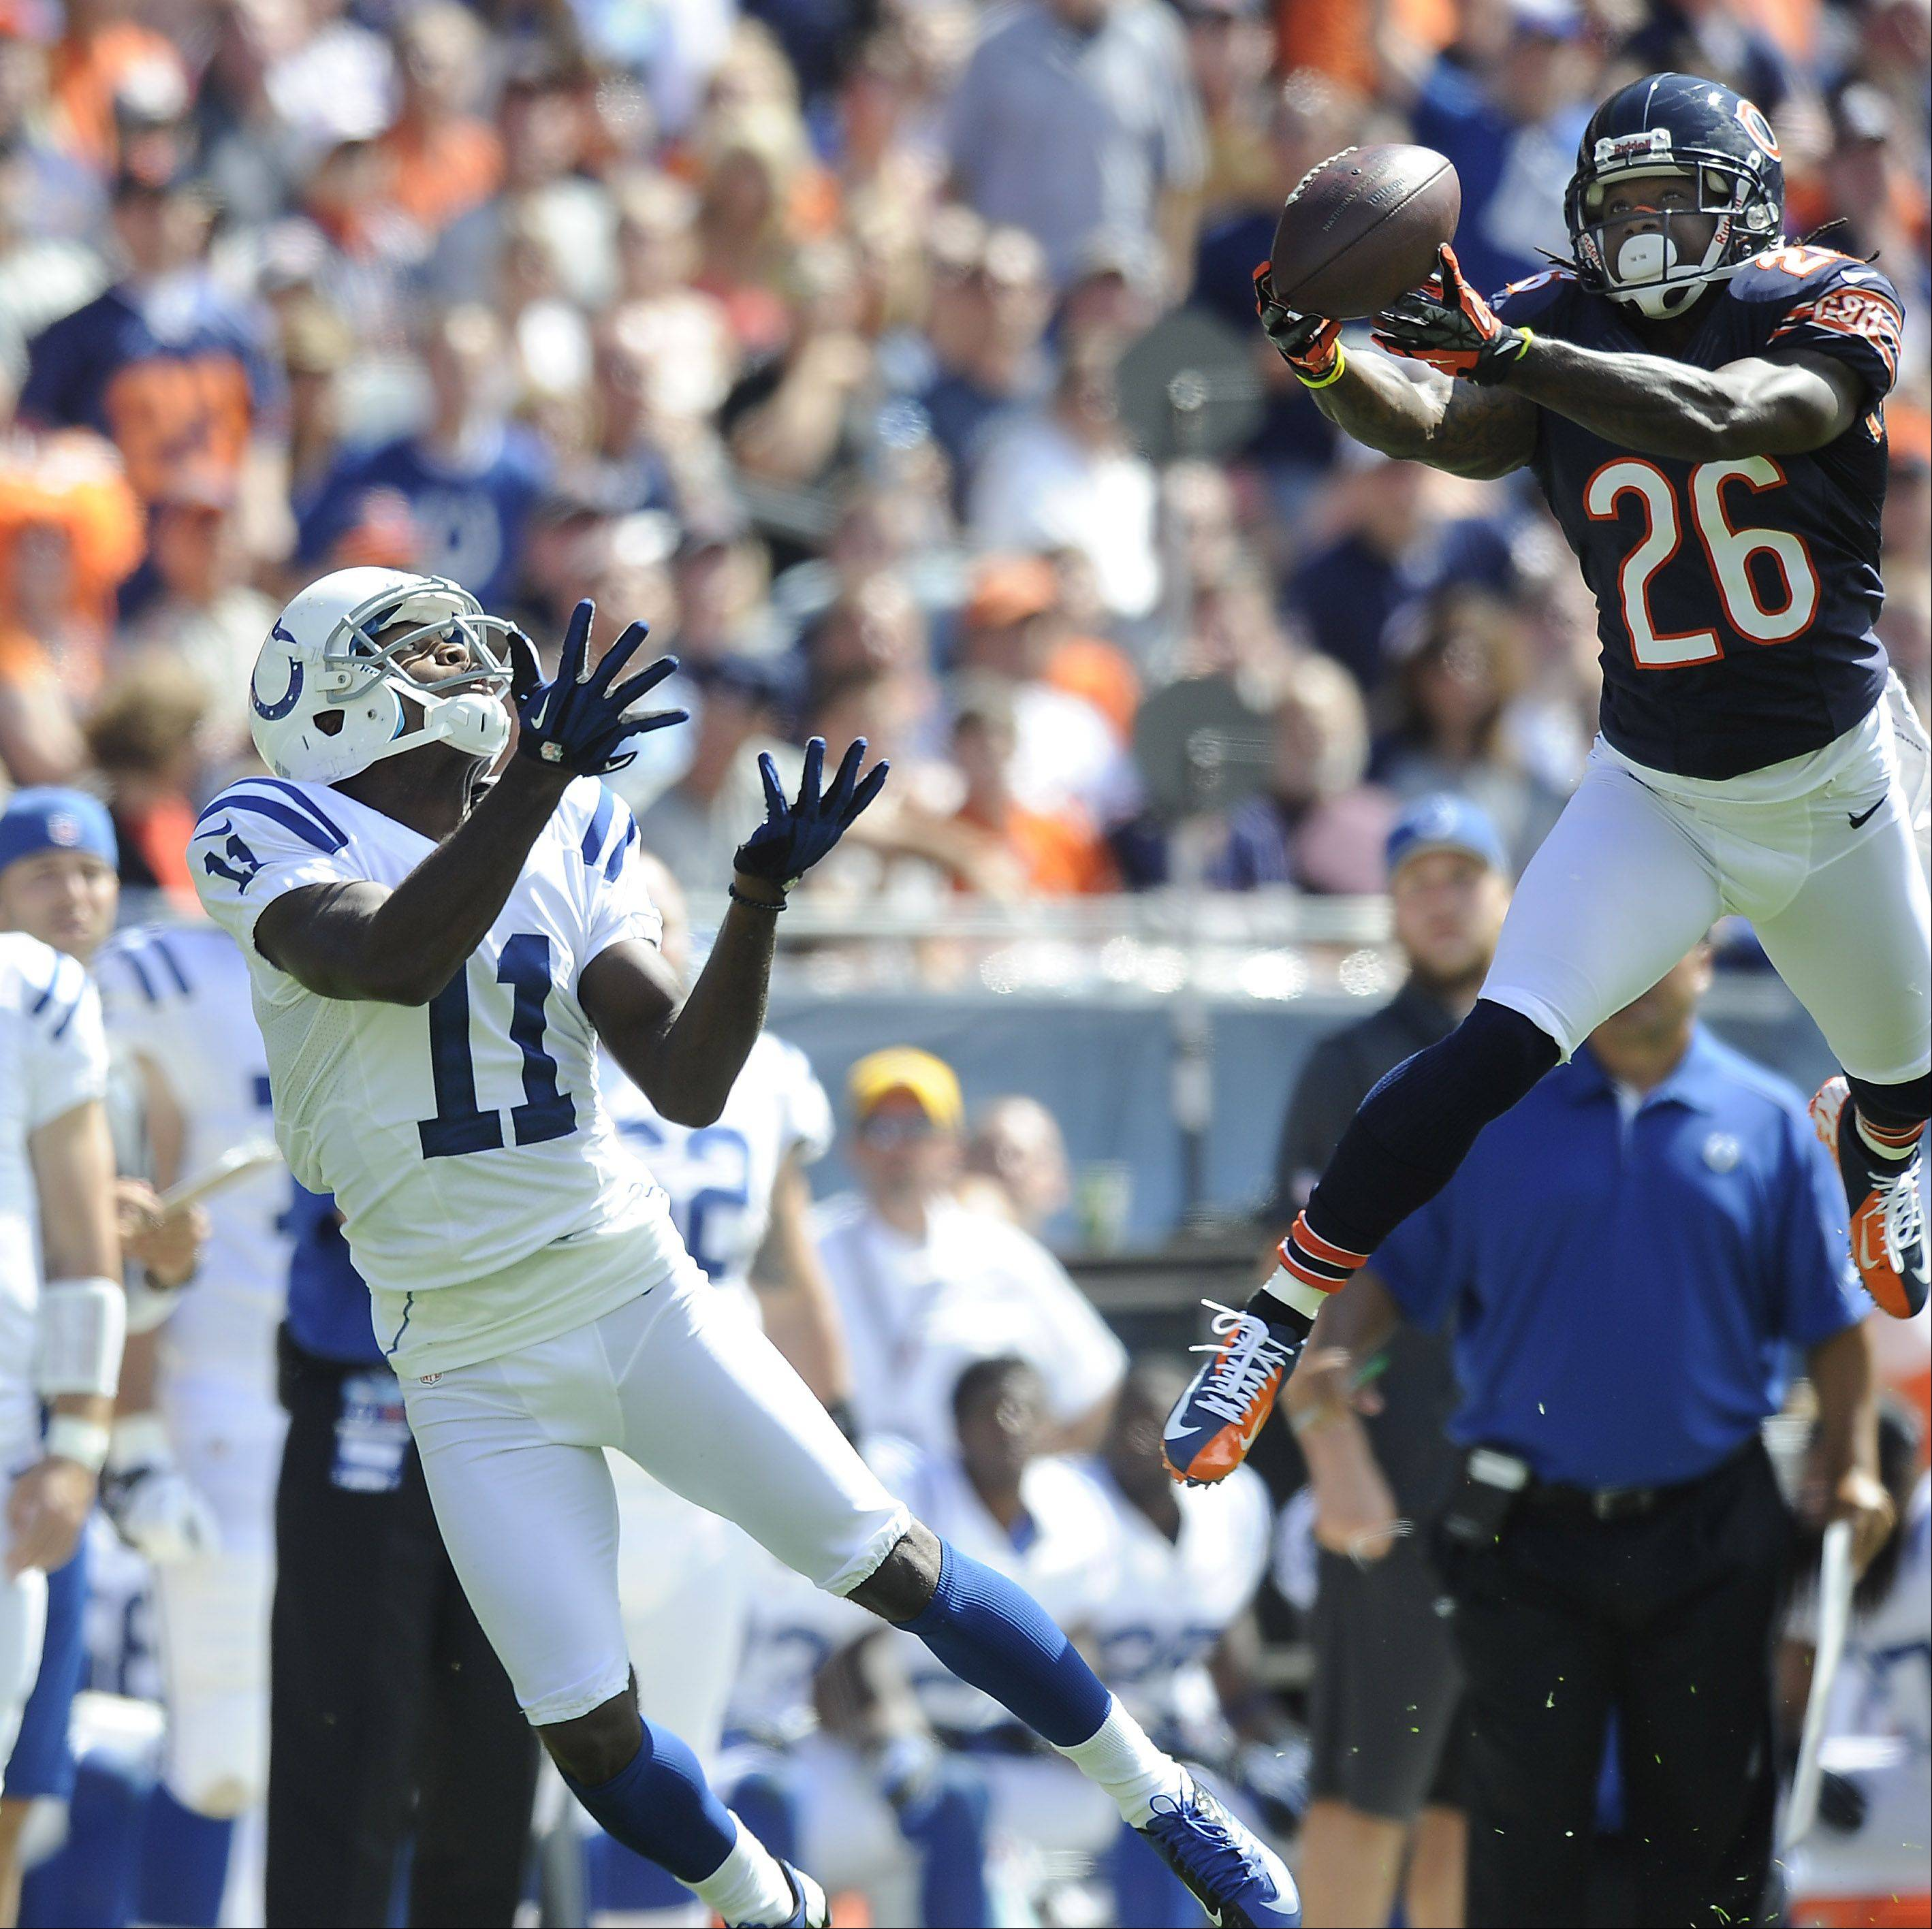 Chicago Bears defensive back Tim Jennings makes a finger tip interception and takes it away from intended receiver Donnie Avery in the Bears home opener at Soldier Field. Jennings was named NFC Defensive Player of the Month for September.